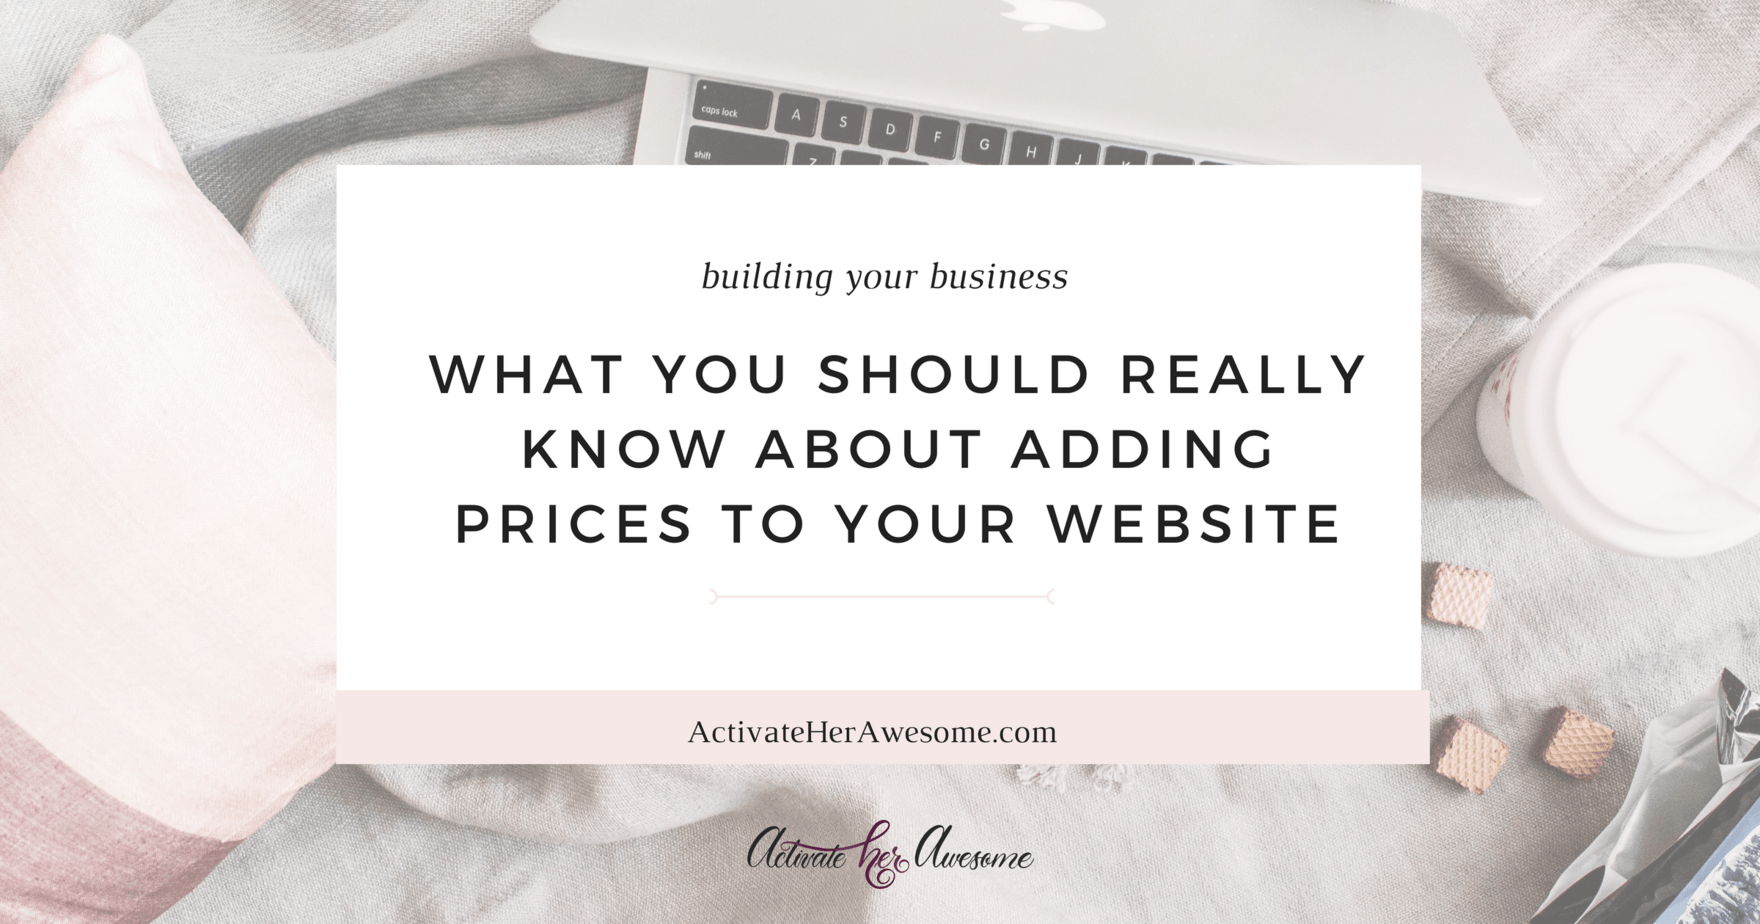 WHAT YOU SHOULD REALLY KNOW ABOUT ADDING PRICES TO YOUR WEBSITE _ via Krista Smith at ActivateHerAwesome.com